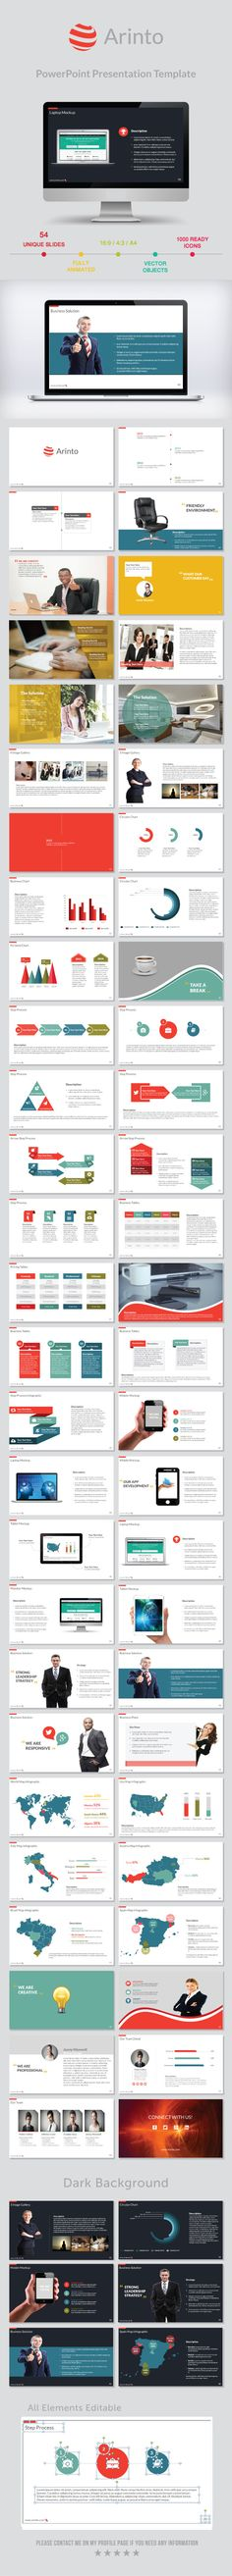 Arinto PowerPoint Presentation Template #design #powerpoint Download: http://graphicriver.net/item/arinto-powerpoint-presentation-template/11528576?ref=ksioks